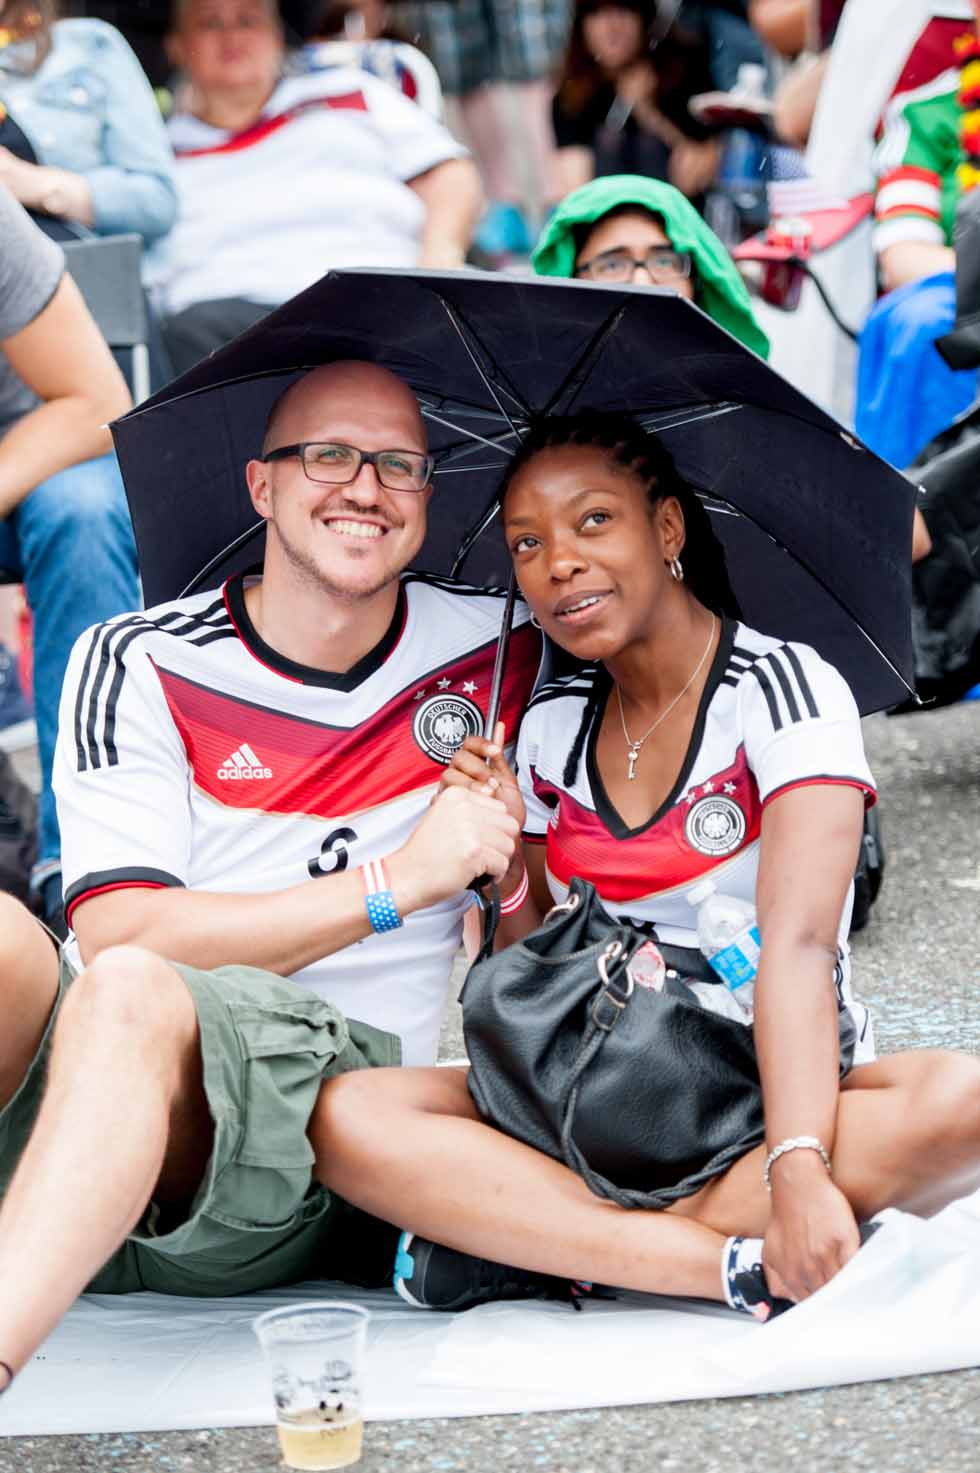 zum-schneider-nyc-2014-world-cup-germany-france-9482.jpg